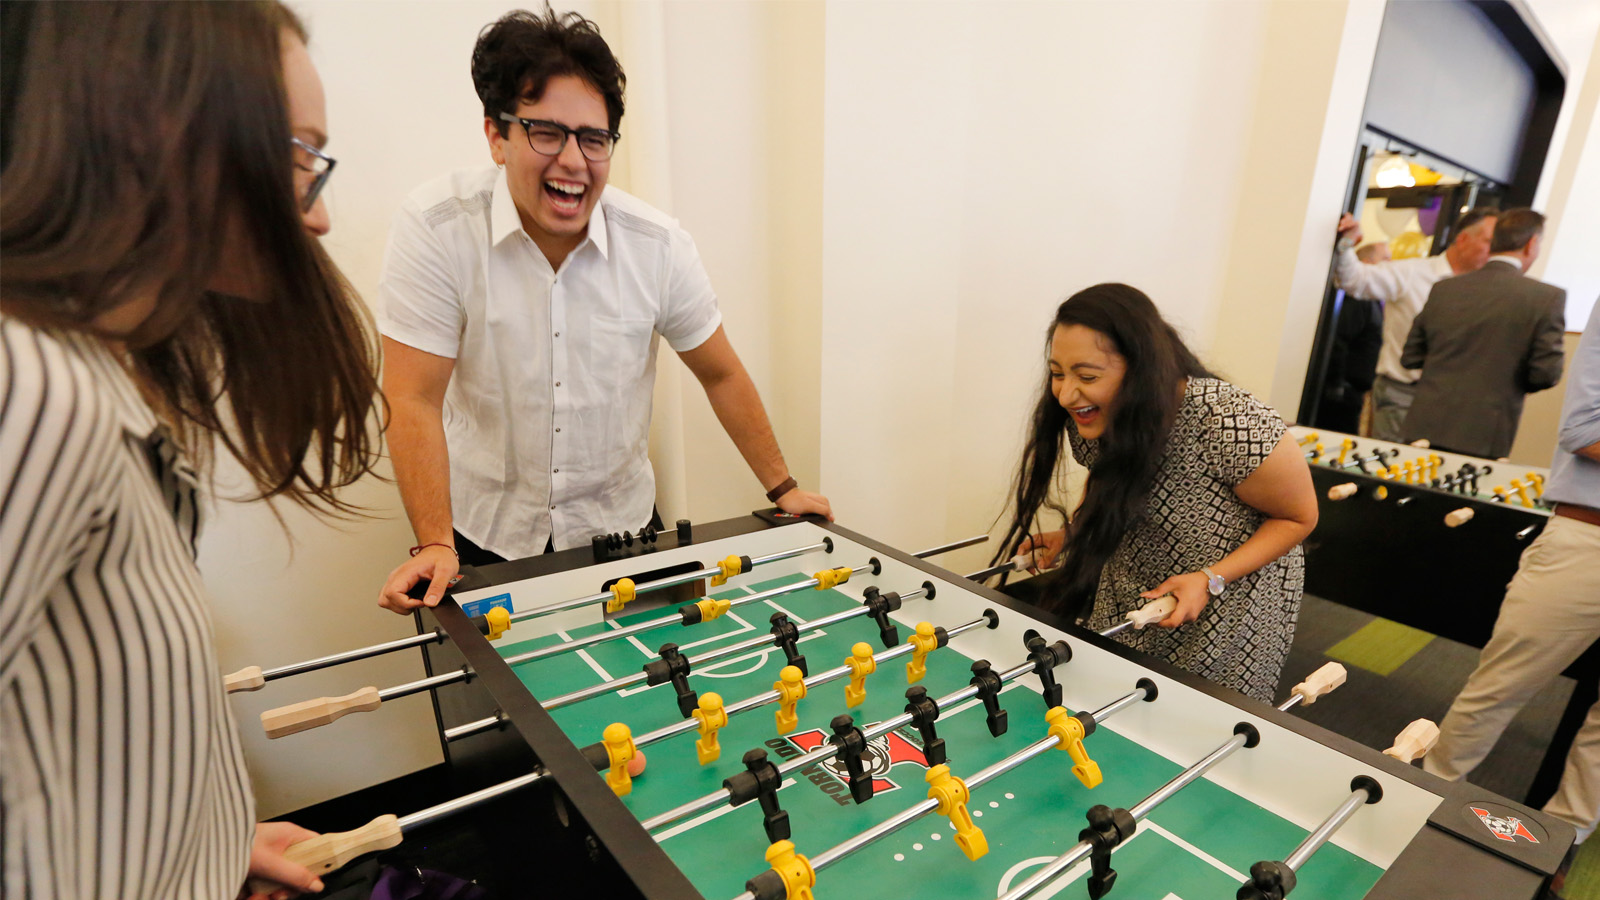 Students playing fussball